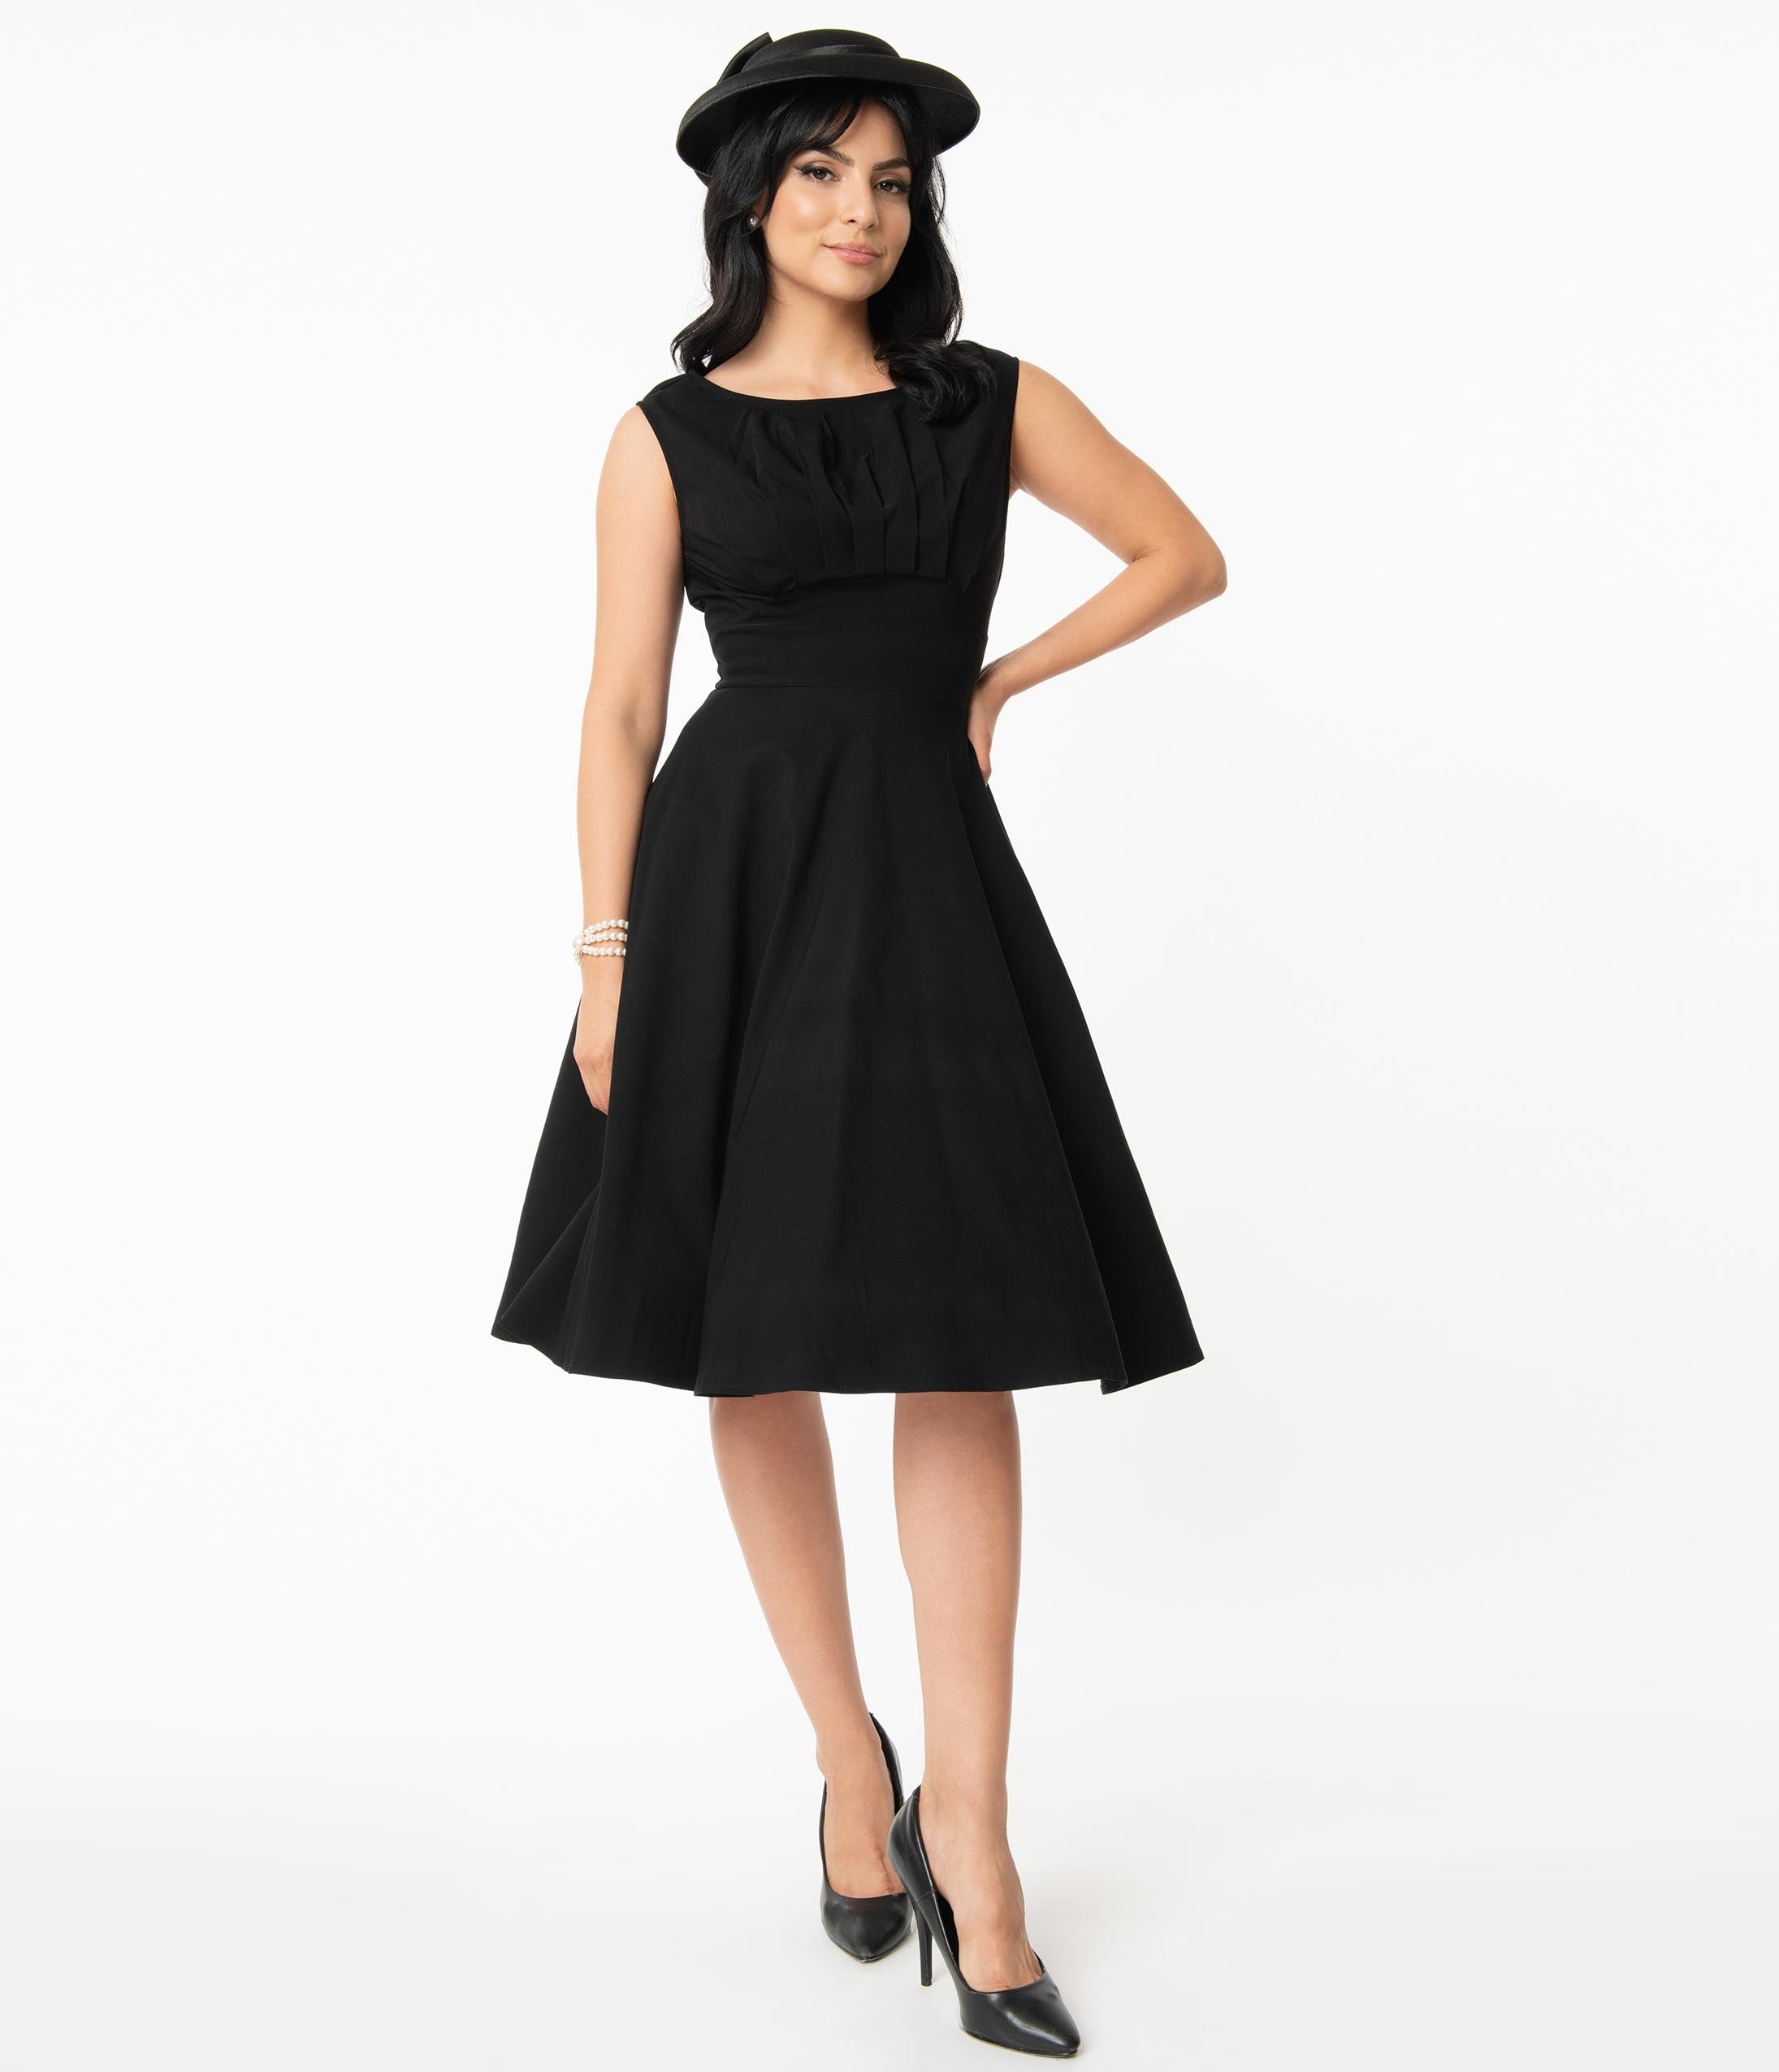 1950s Plus Size Dresses, Swing Dresses Unique Vintage 1950S Black Monaco Swing Dress $78.00 AT vintagedancer.com